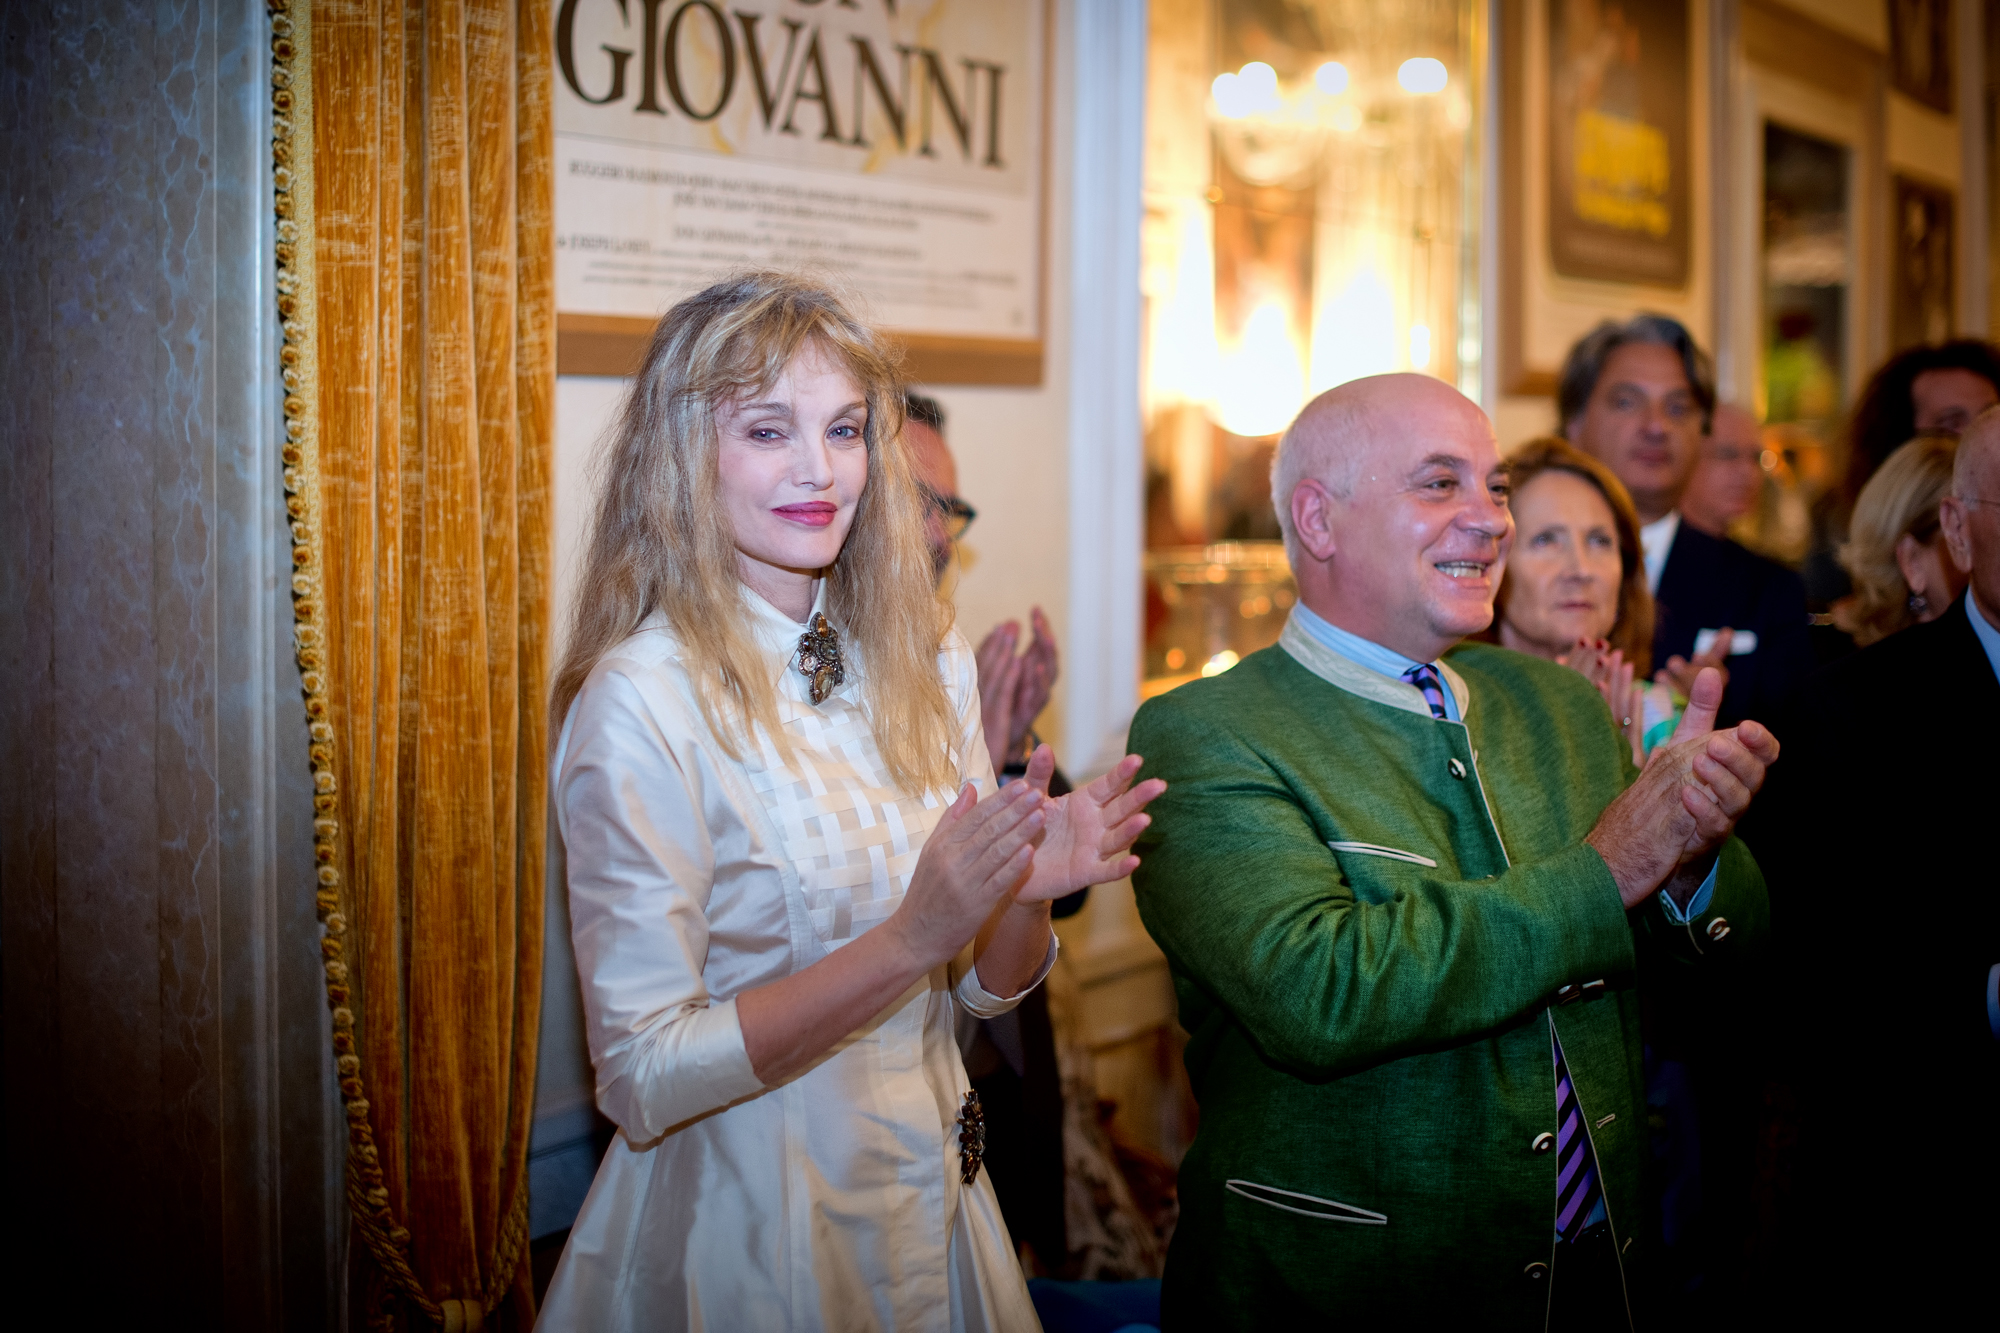 EVENTS laure jacquemin venice concert palazzo birthday photography (51).jpg